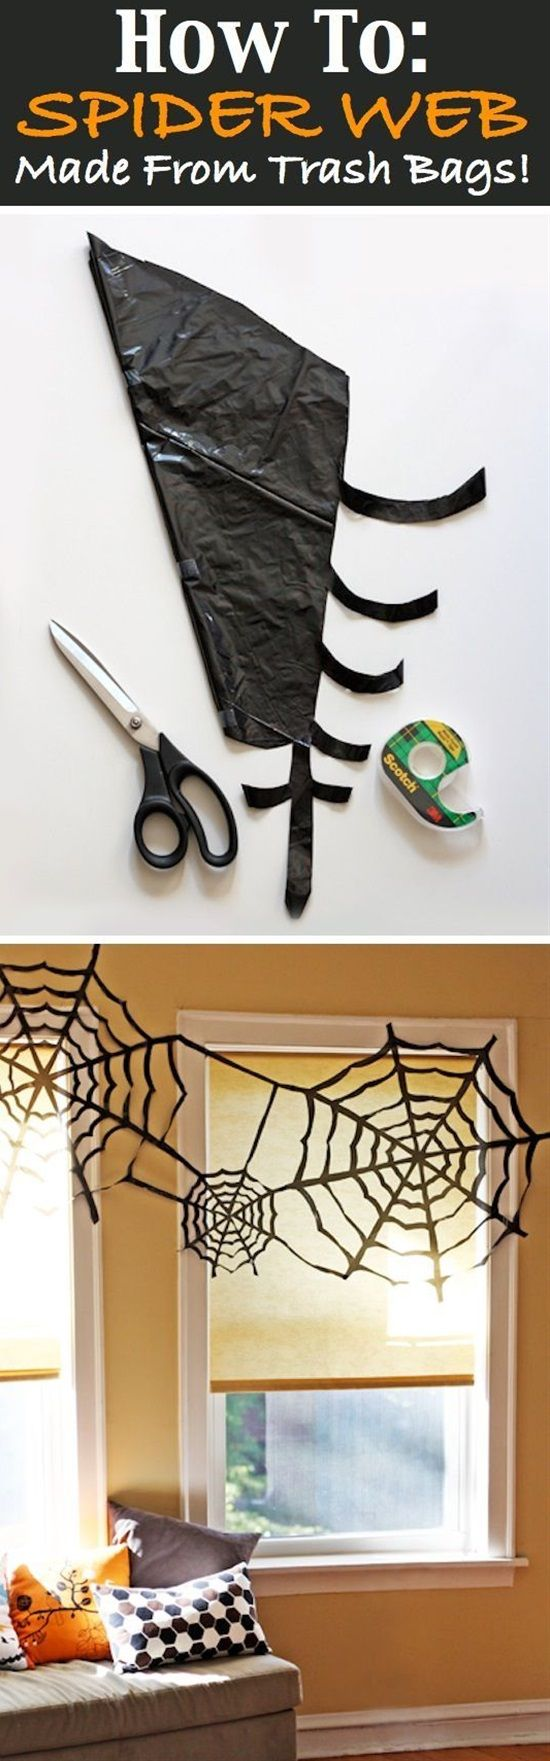 This Halloween, don't just settle for some carved pumpkins, be creative and decorate every part of your home for Halloween. It's only once in a year, so have fun and don't worry, we got you covered. Here are some beautiful decoration ideas you can build at home.